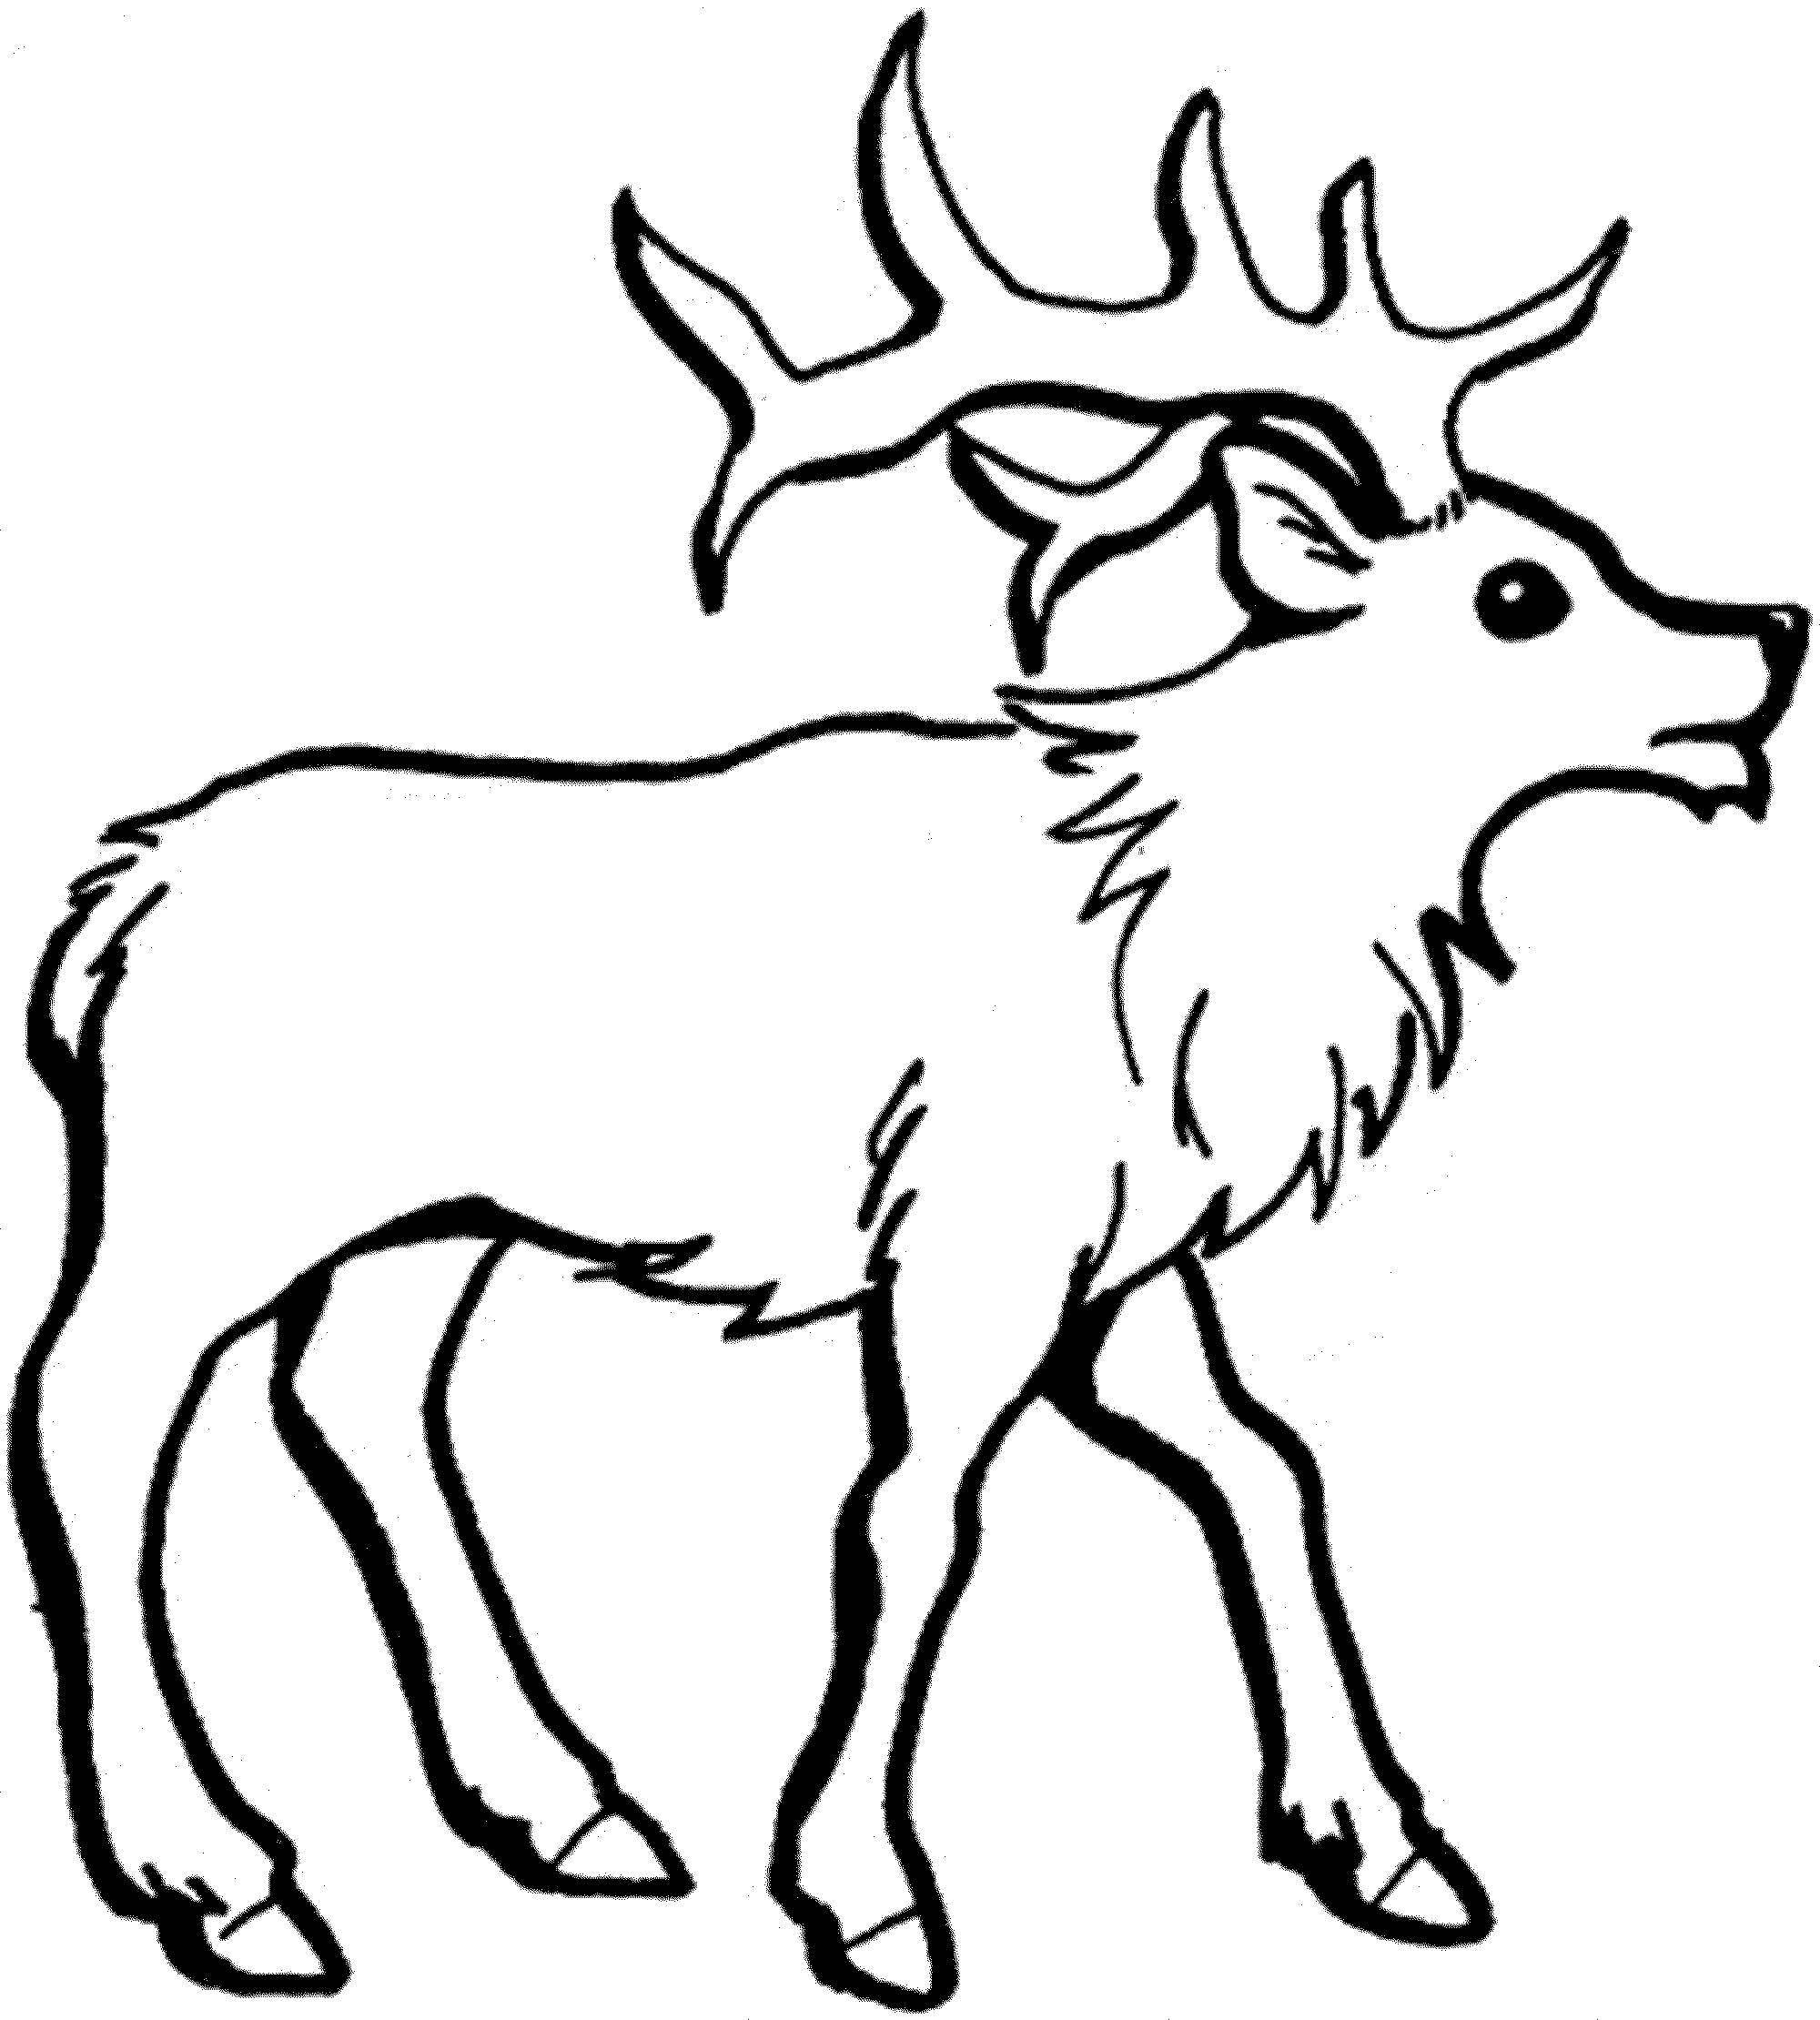 Rudolf The Rednosed Reindeer Coloring Pages at GetDrawings.com ...